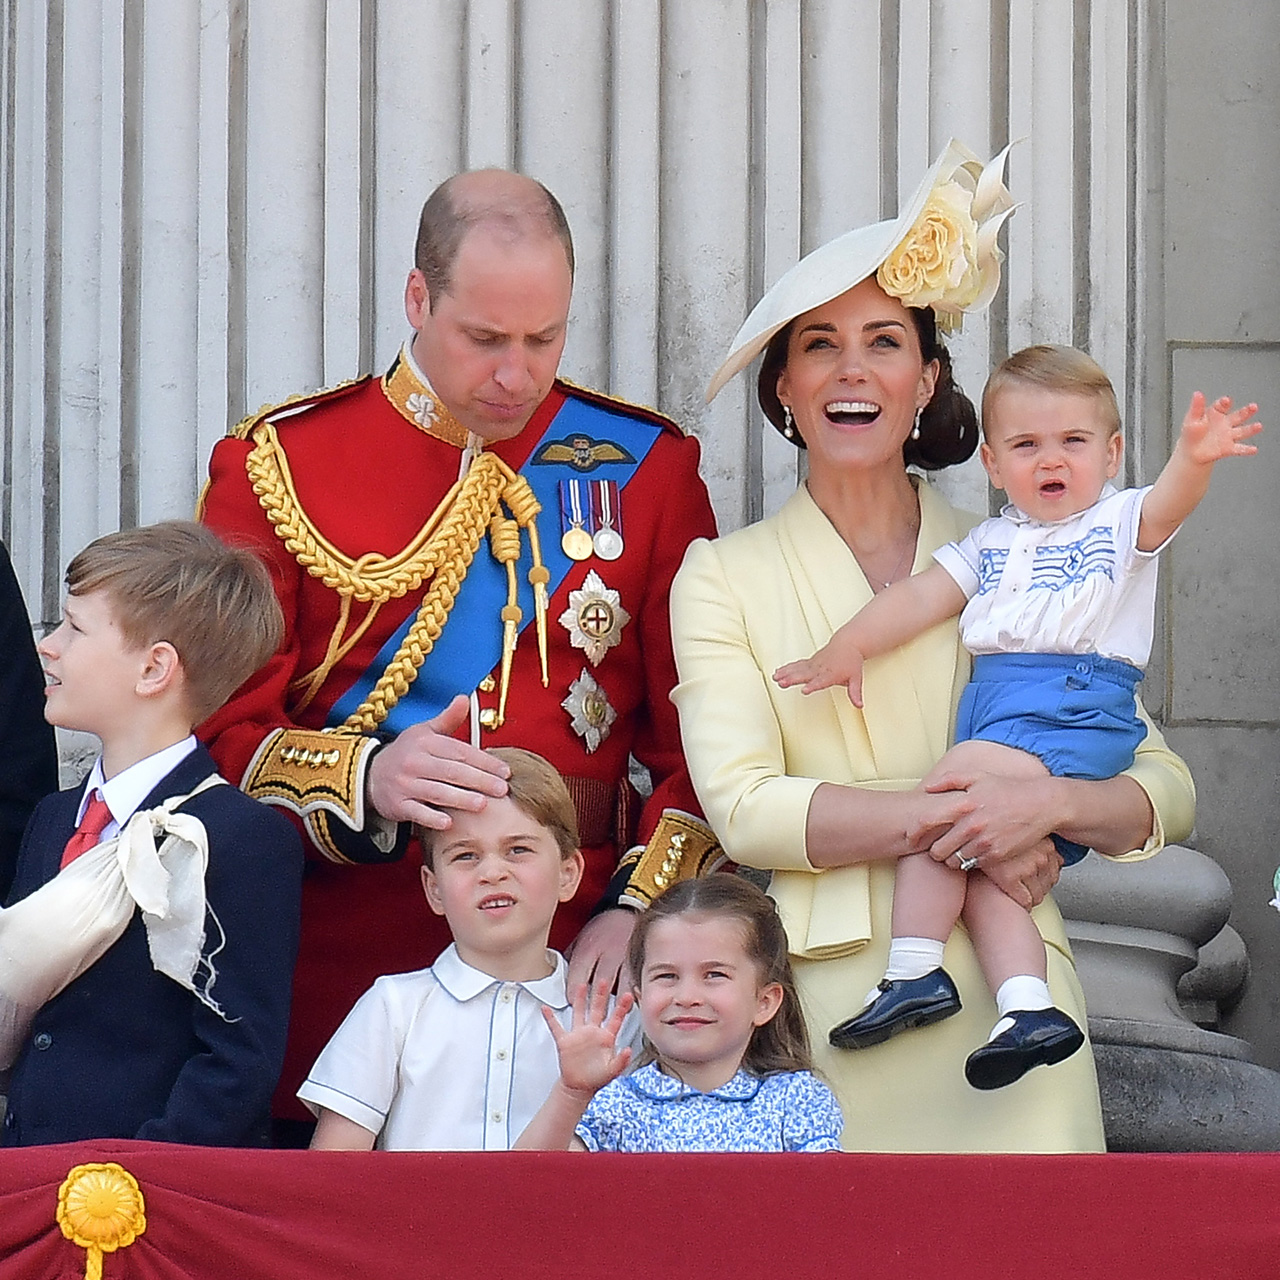 prince louis in Kate's arms waving